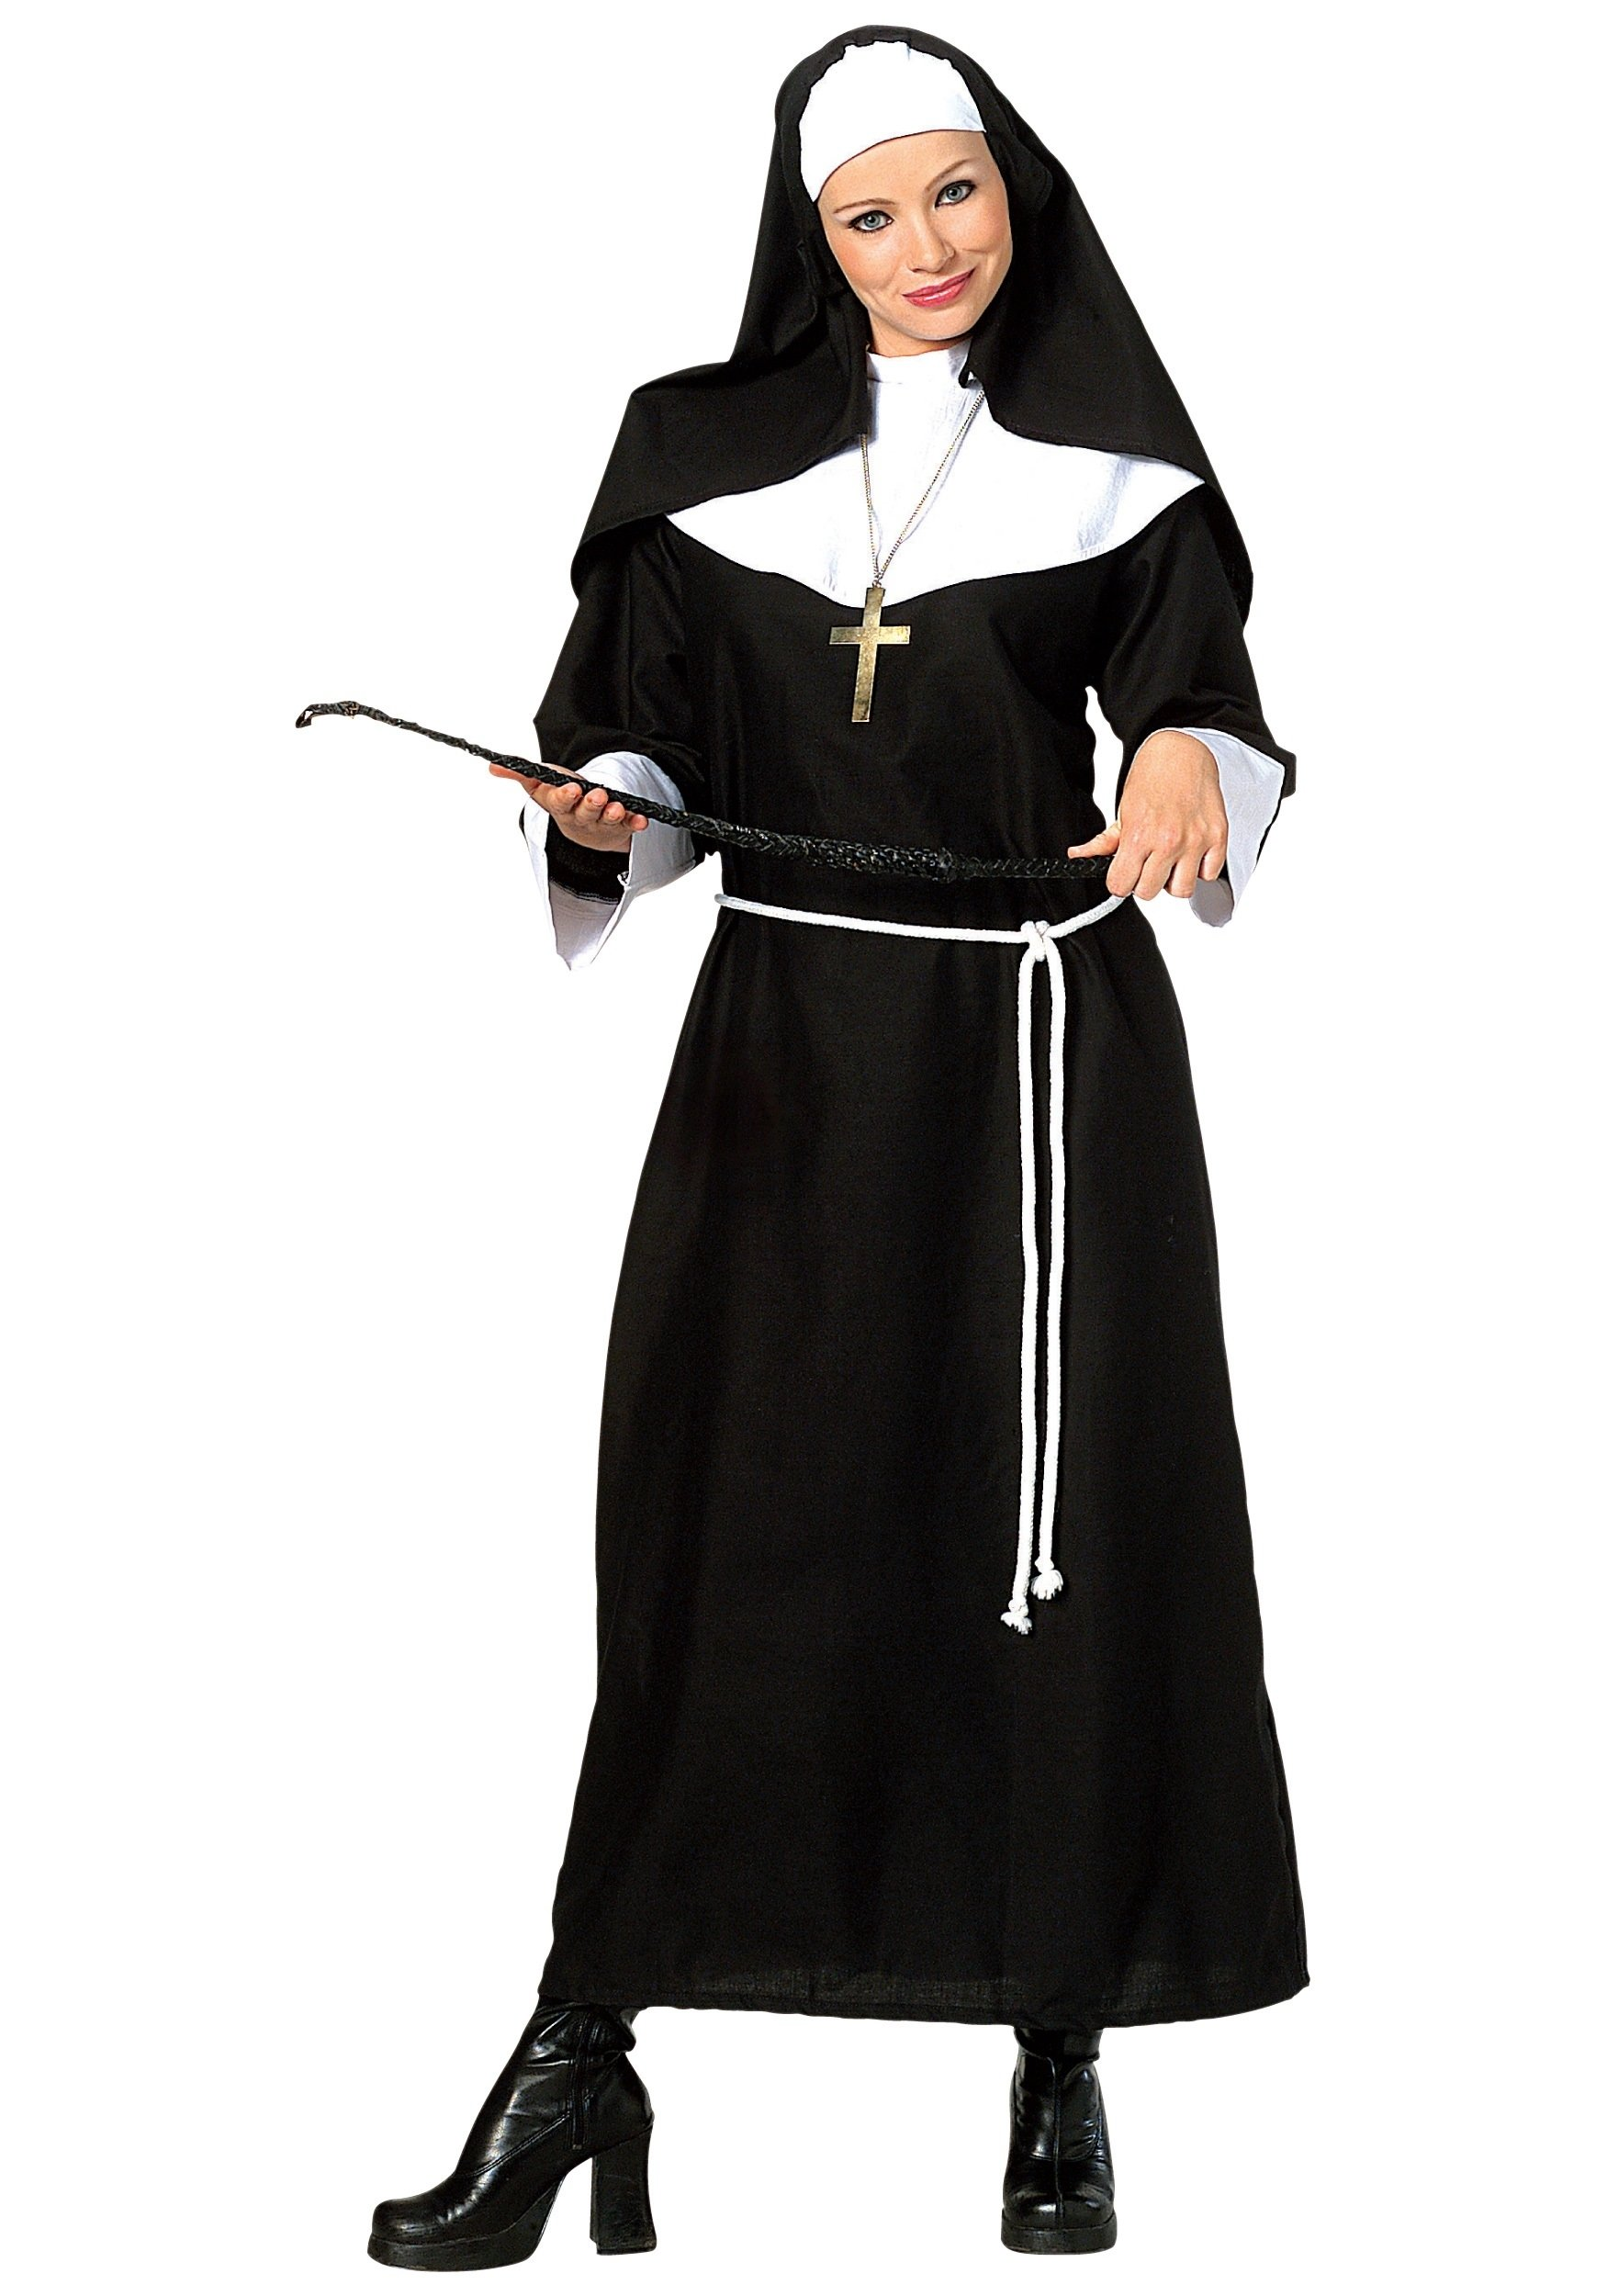 10 Stunning Halloween Costumes For Women Ideas classic nun adult costume womens traditional religious costume ideas 2020